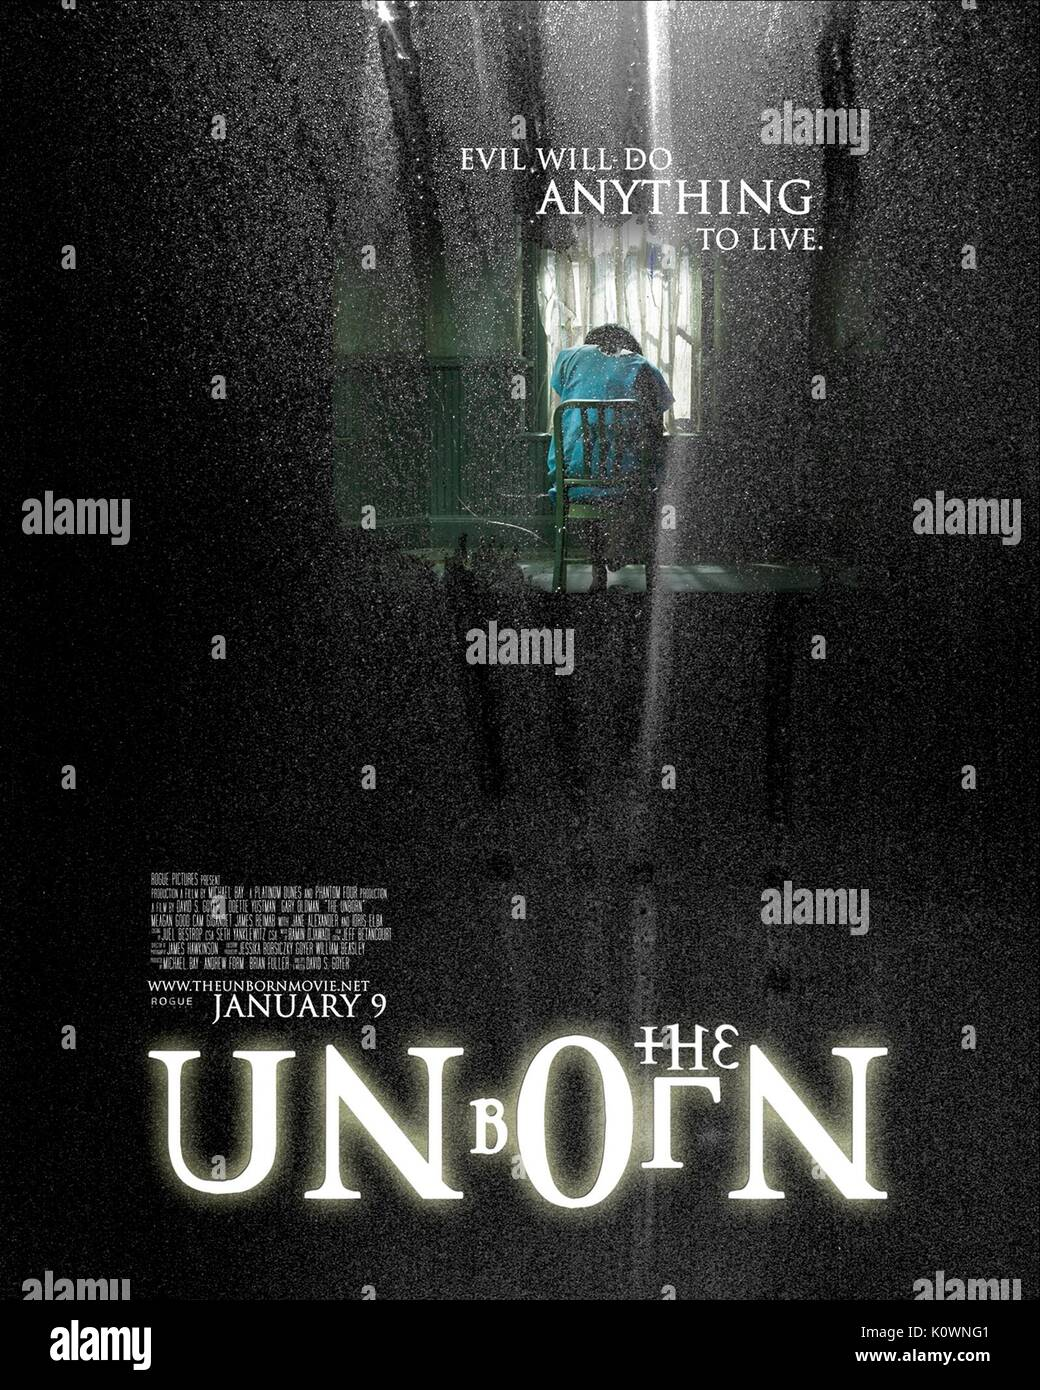 MOVIE POSTER THE UNBORN (2009) Stock Photo